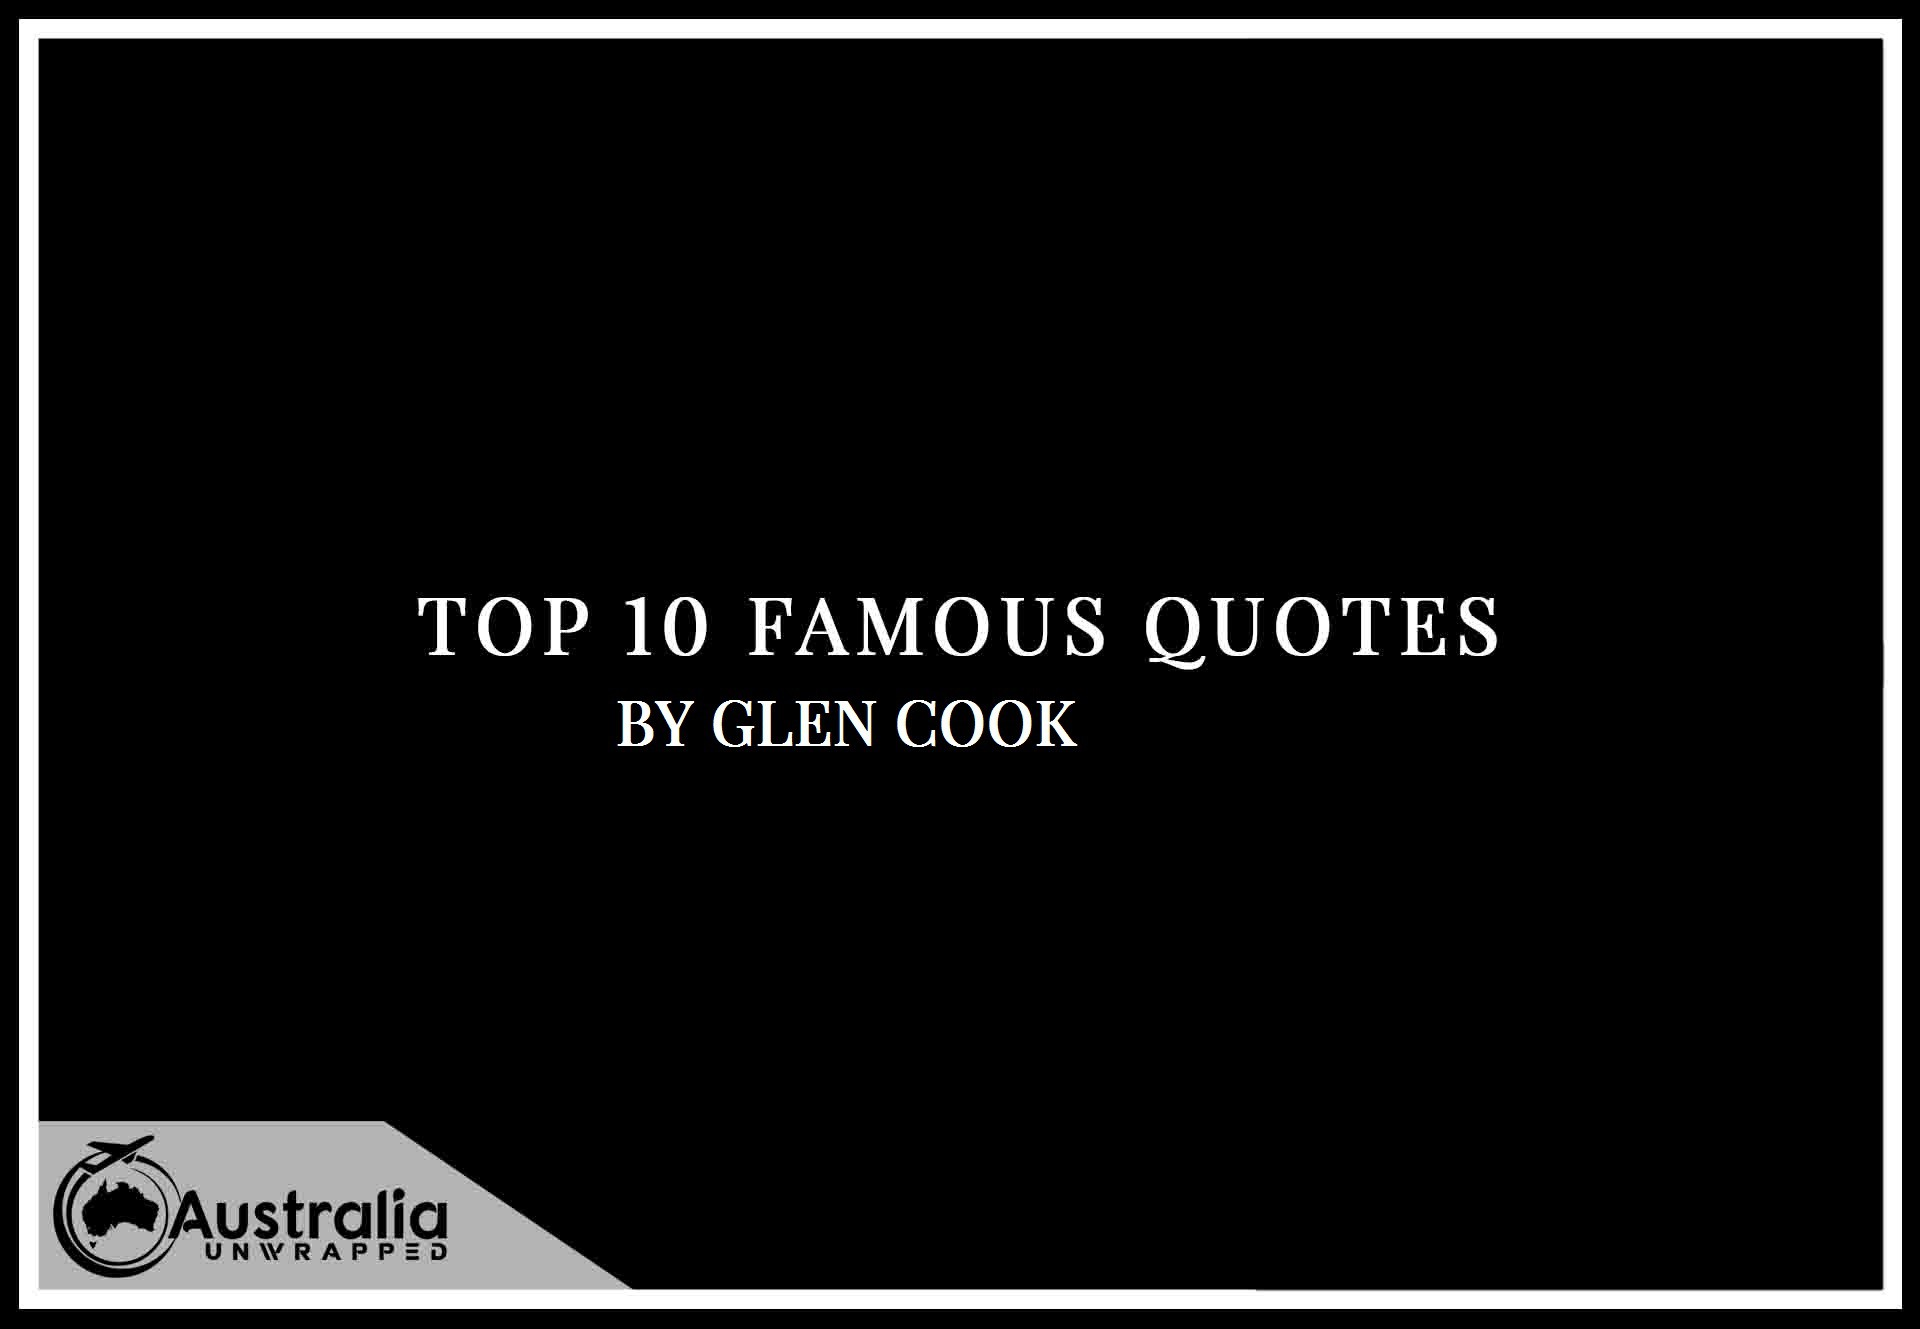 Glen Cook's Top 10 Popular and Famous Quotes